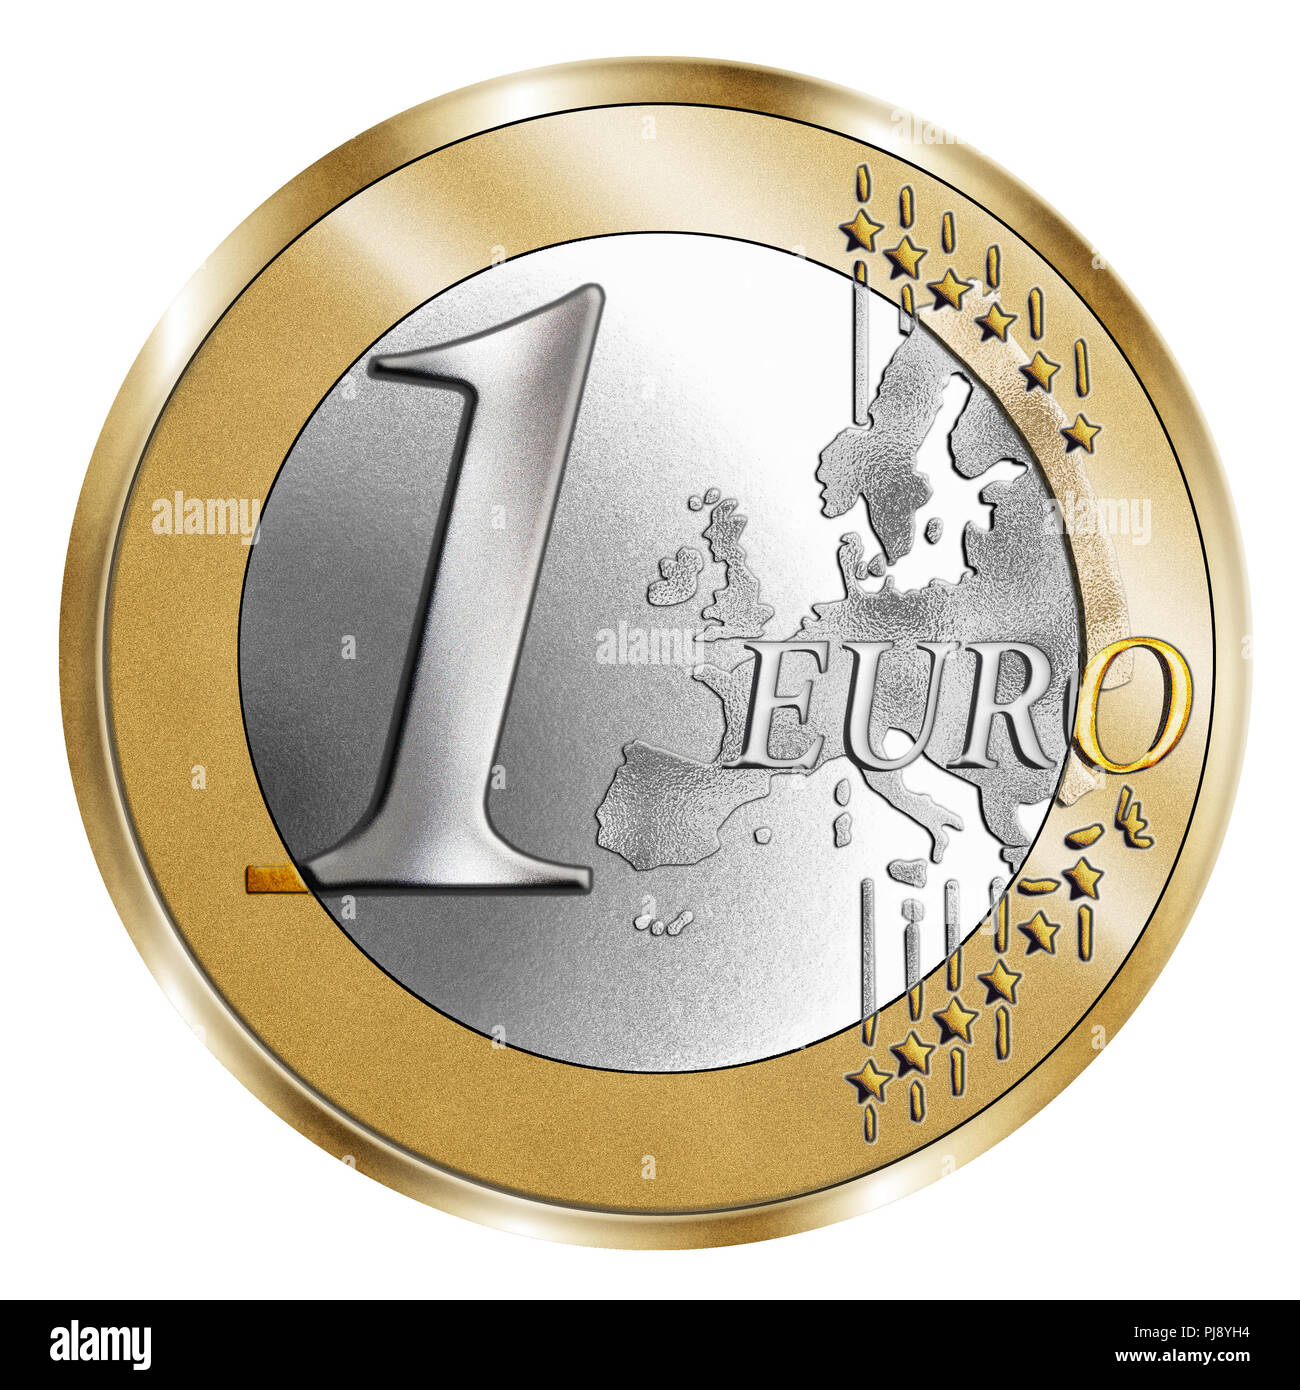 A montage of a stylised 1 Euro coin and a silver background. A Photoshop composite with inlaid grain emphasises the vivid silver and gold - Stock Image